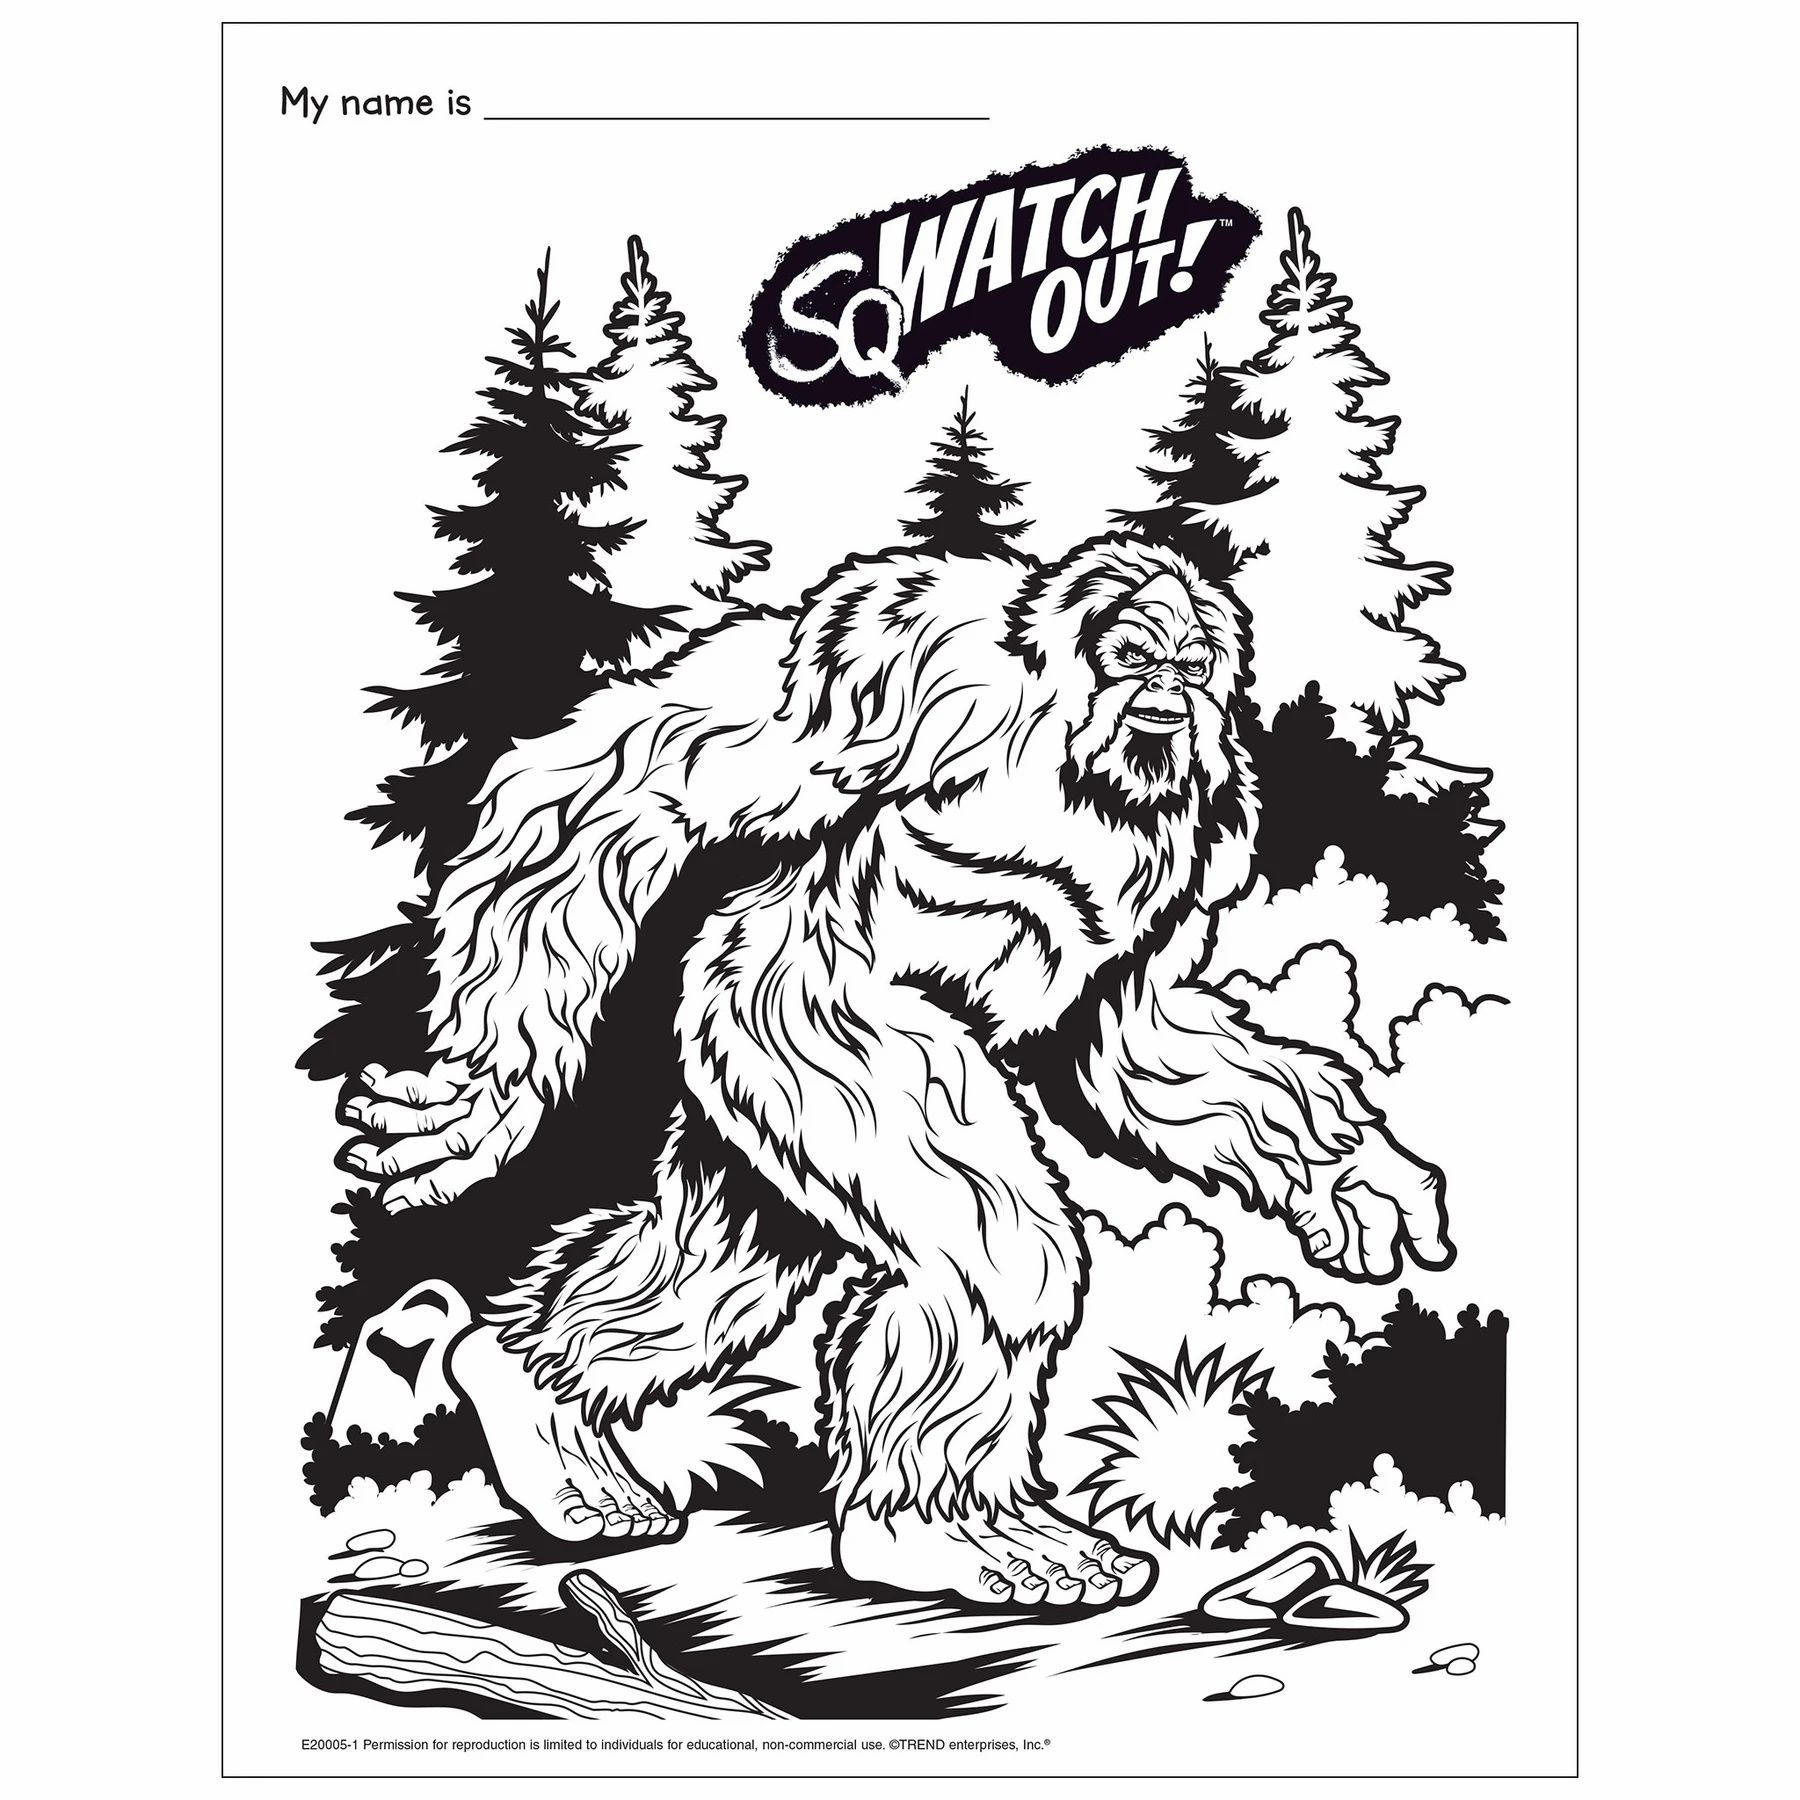 Bigfoot Coloring Page Free Printable Creative Activities For Kids Coloring Pages Family Card Games